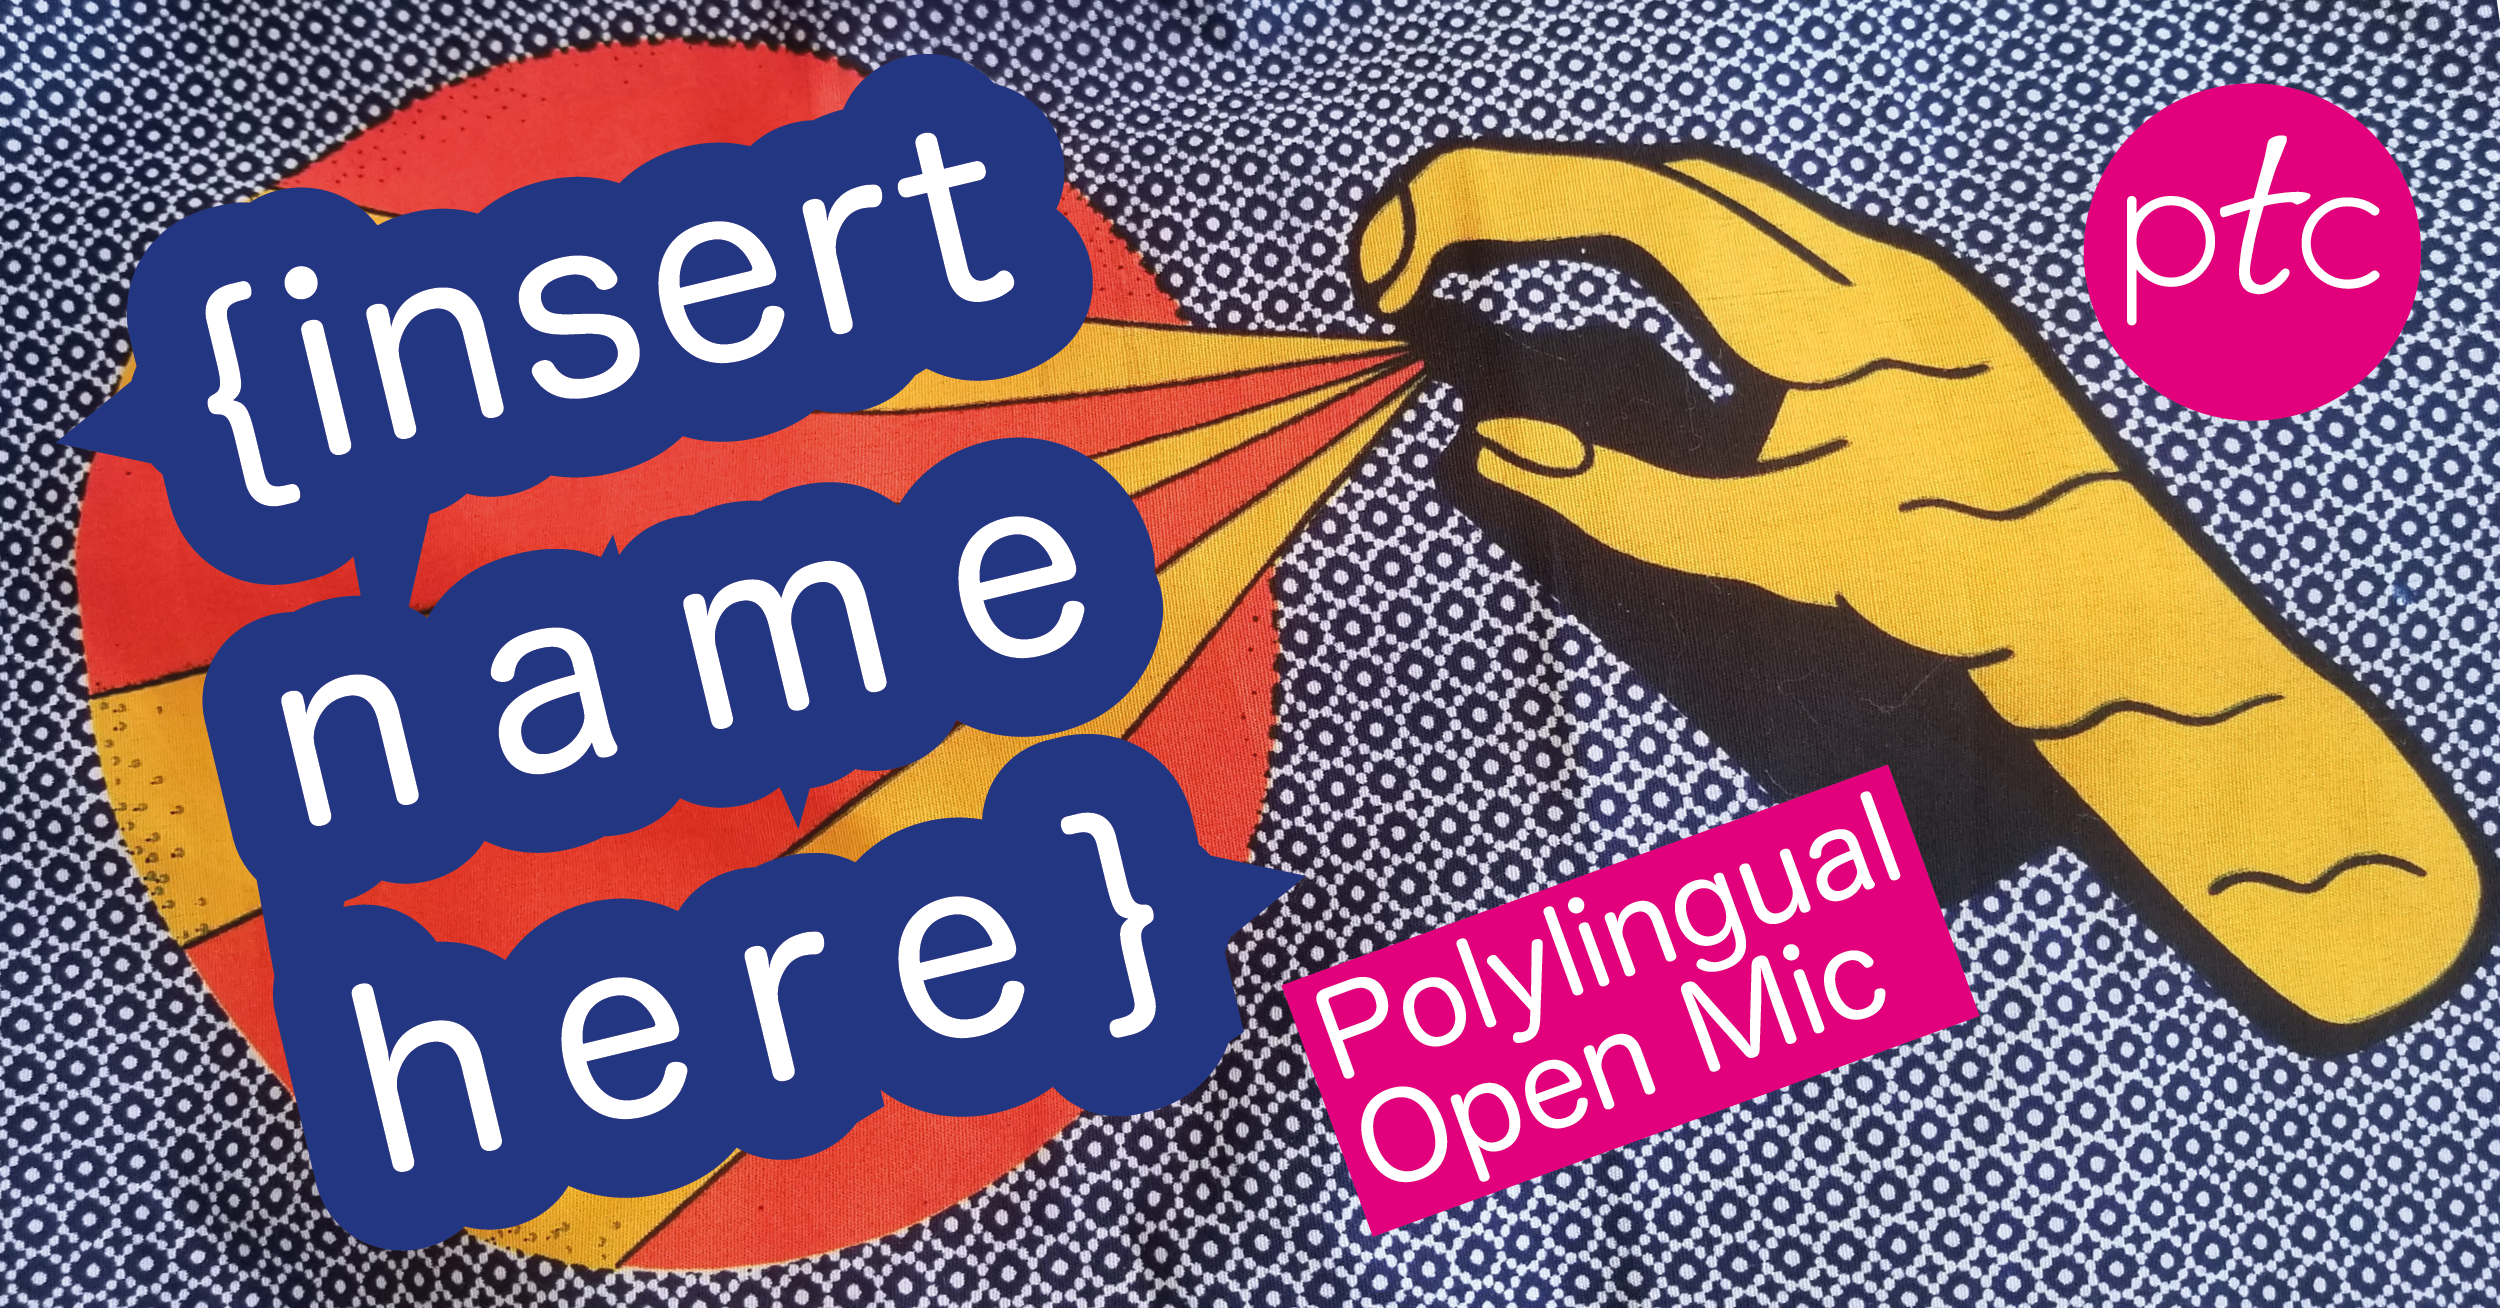 {Insert Name Here} Polylingual Open Mic